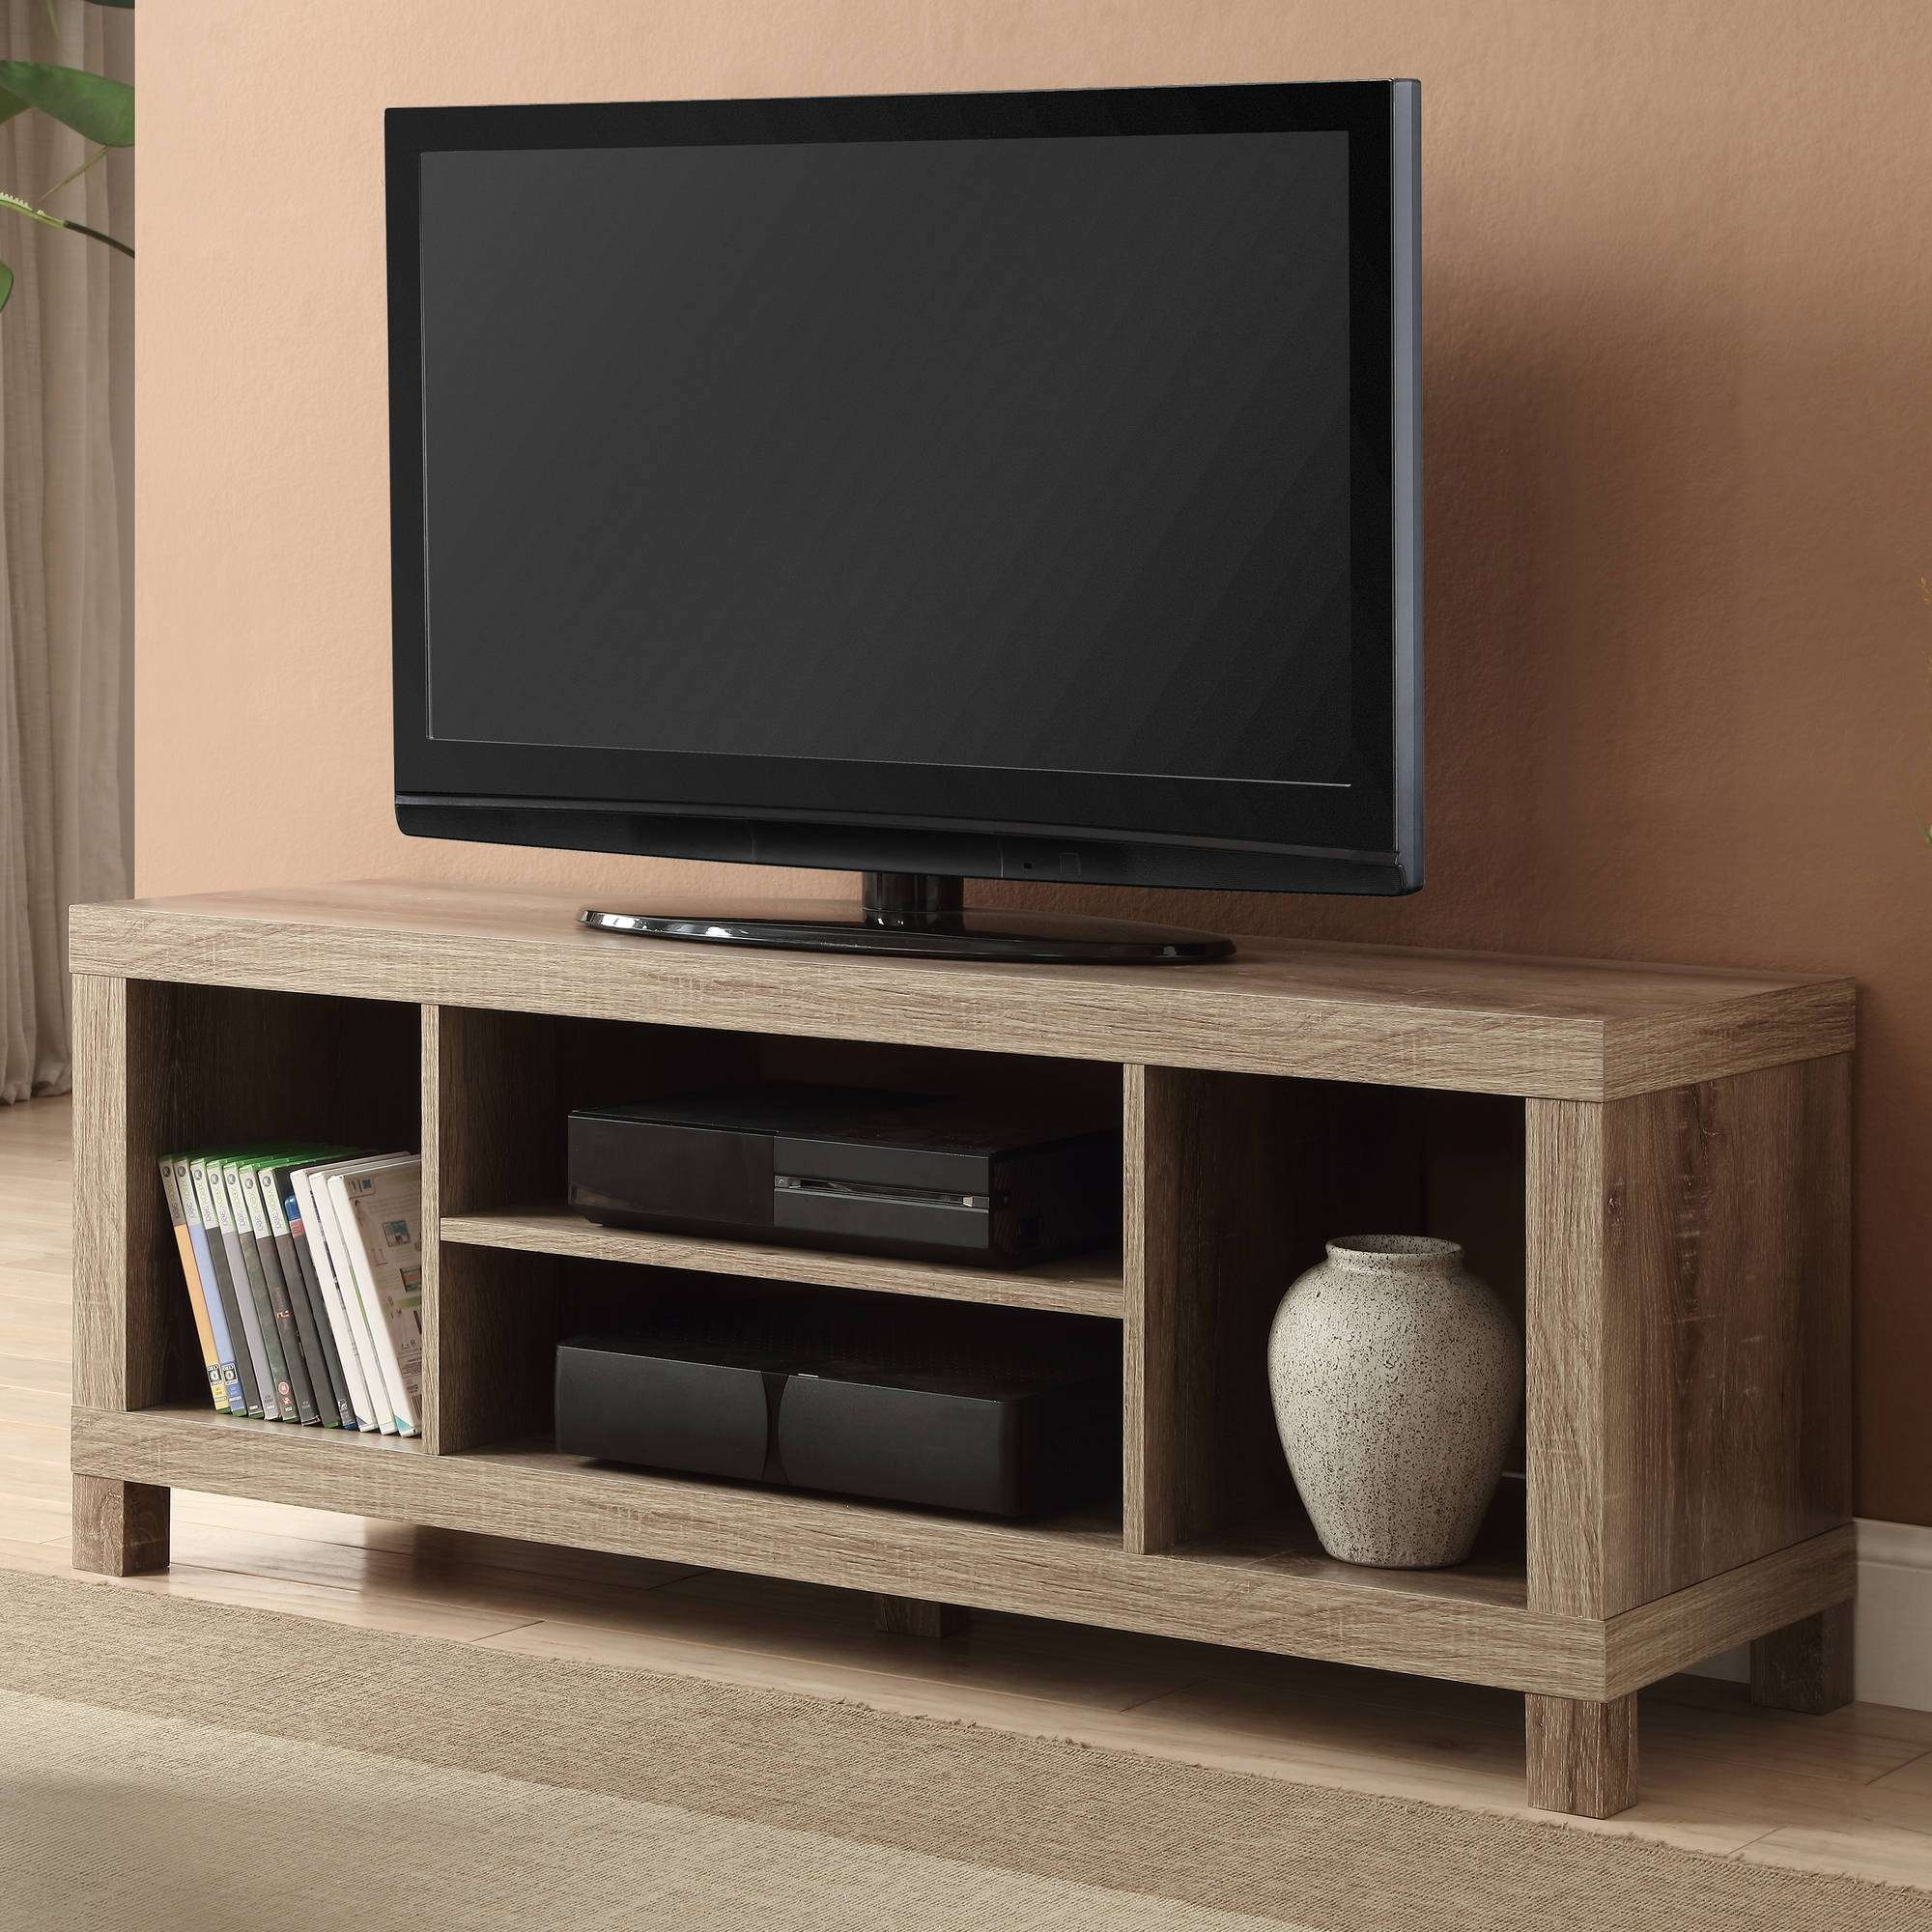 Oak Tv Stands For Flat Screen With Regard To Oak Tv Stands For Flat Screen (View 9 of 15)